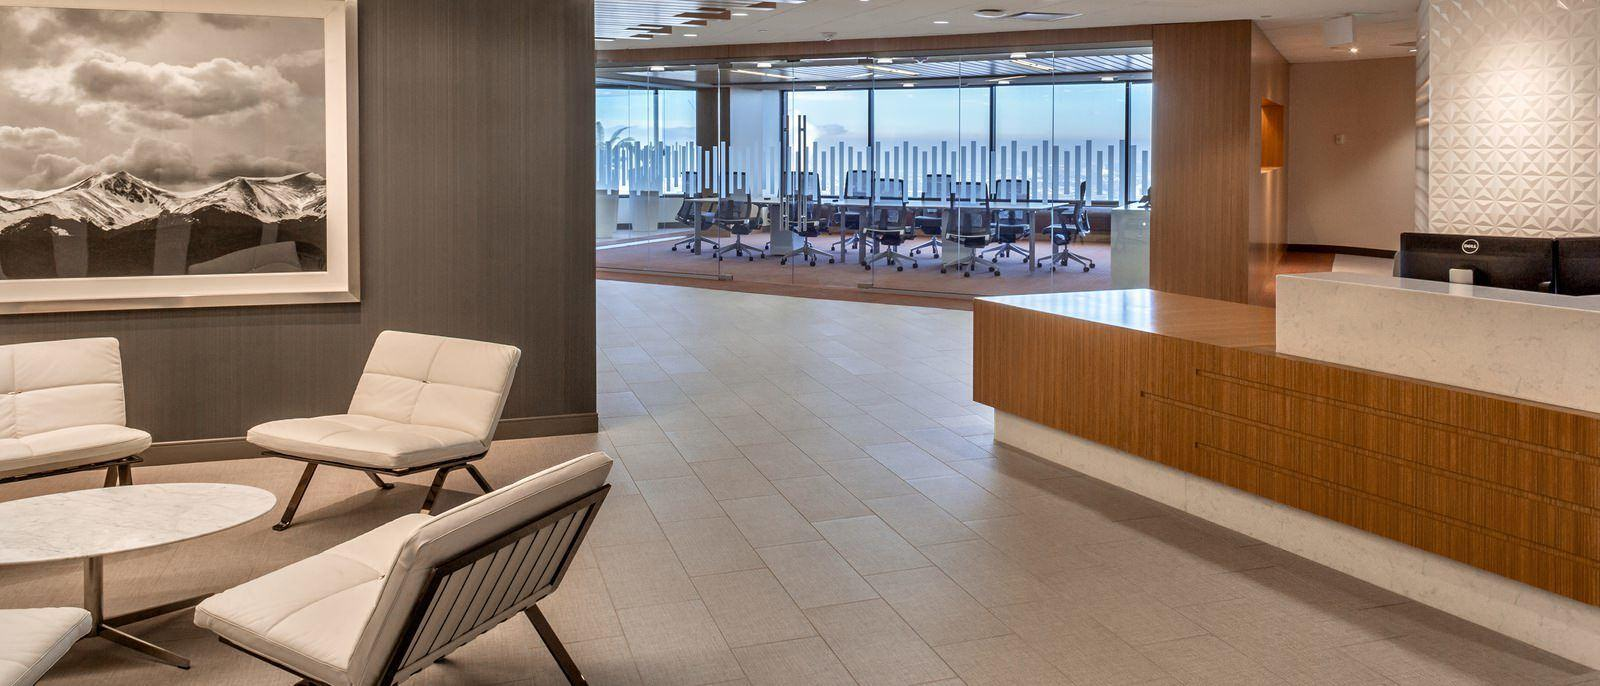 View of a lobby with a glass conference room behind it.